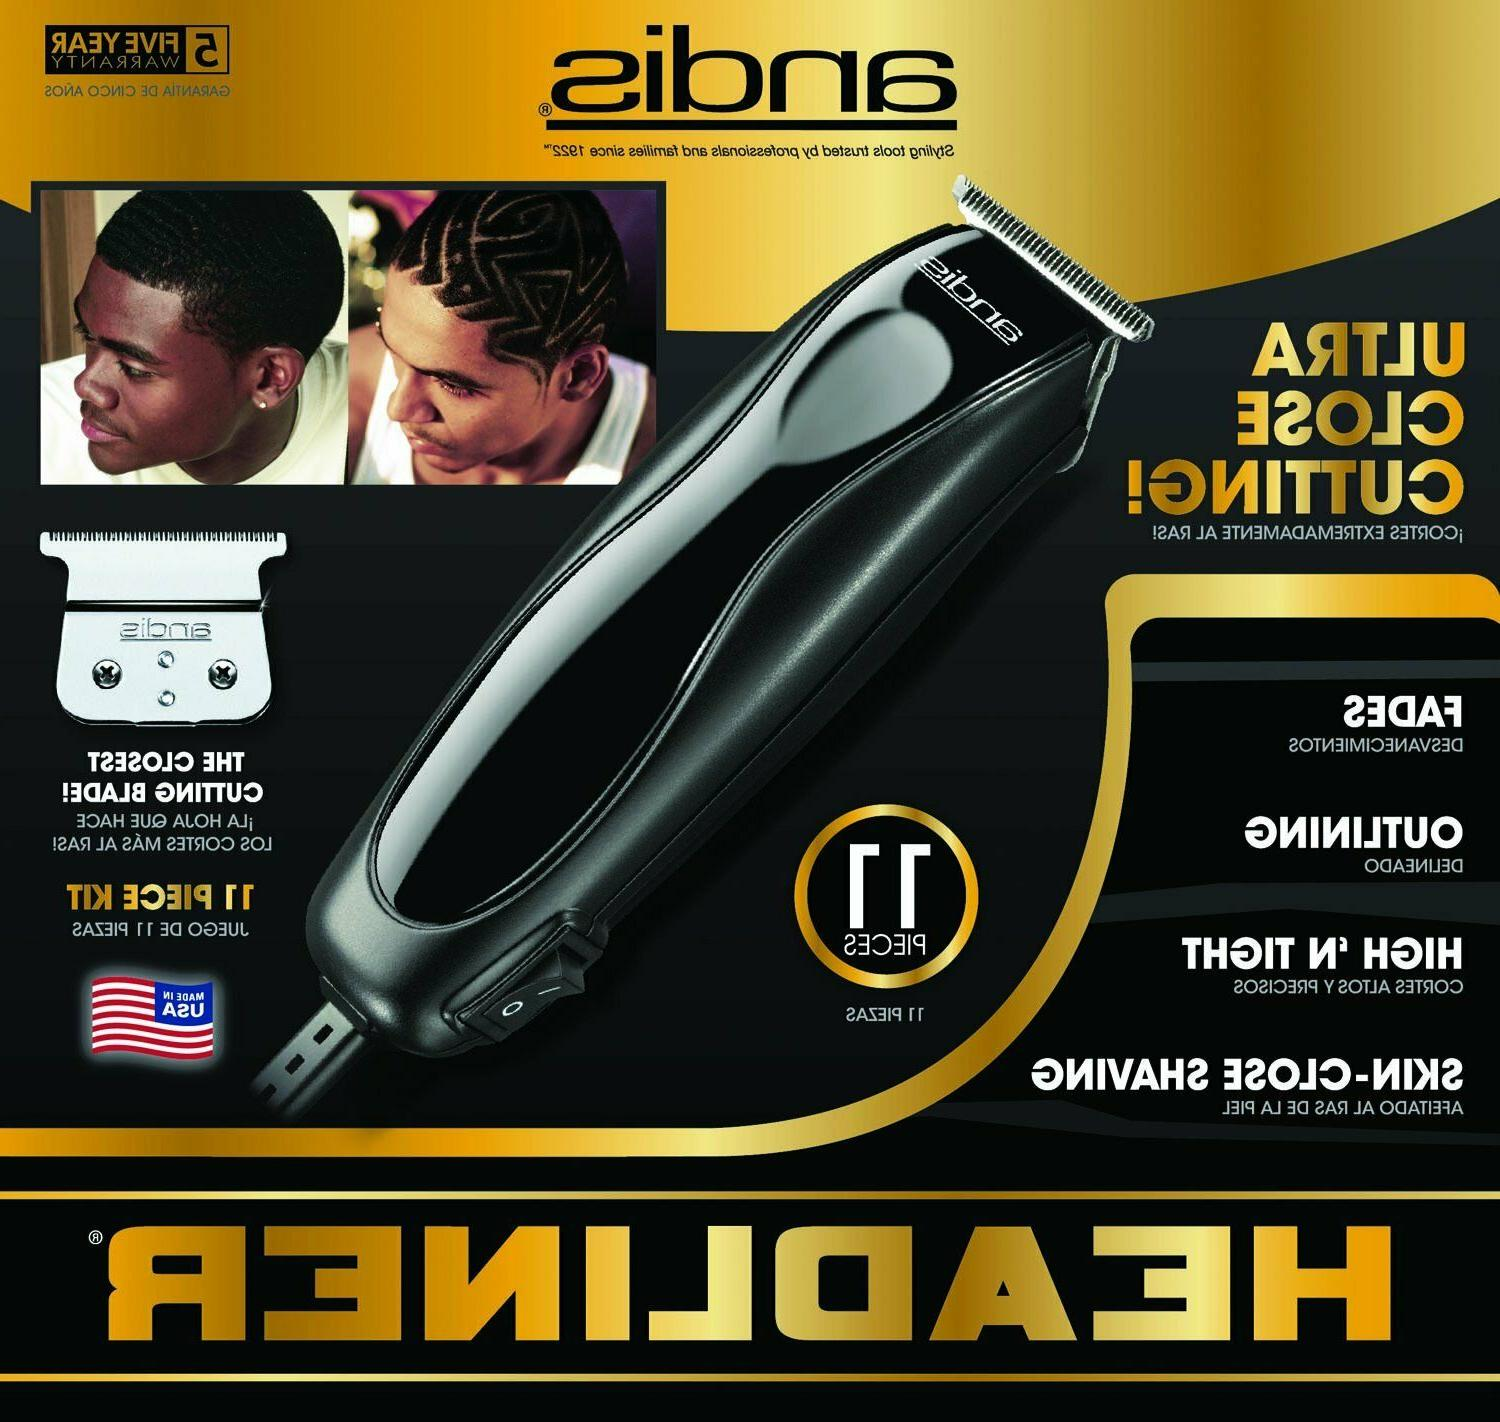 Andis Professional Trimmer Cut Clippers Grooming